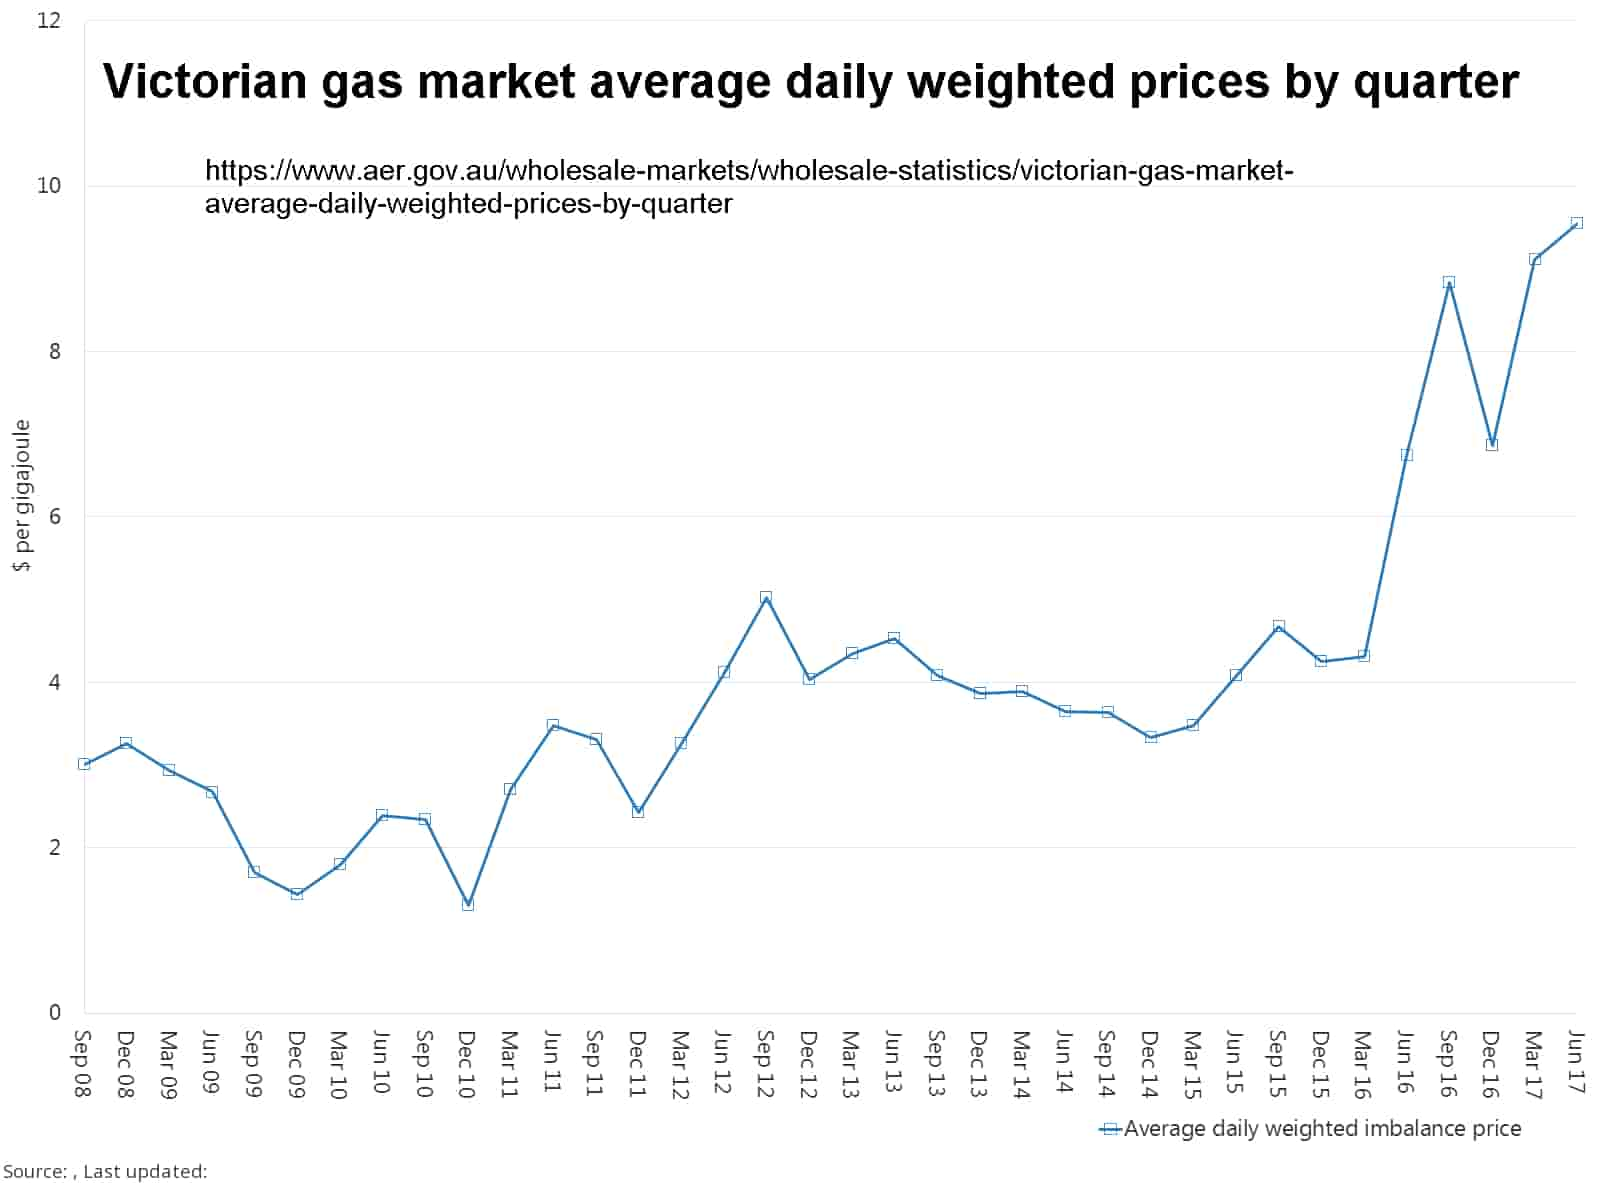 But of course according to macrobusiness the high natural gas prices are all the fault of those evil oil and gas producing folks